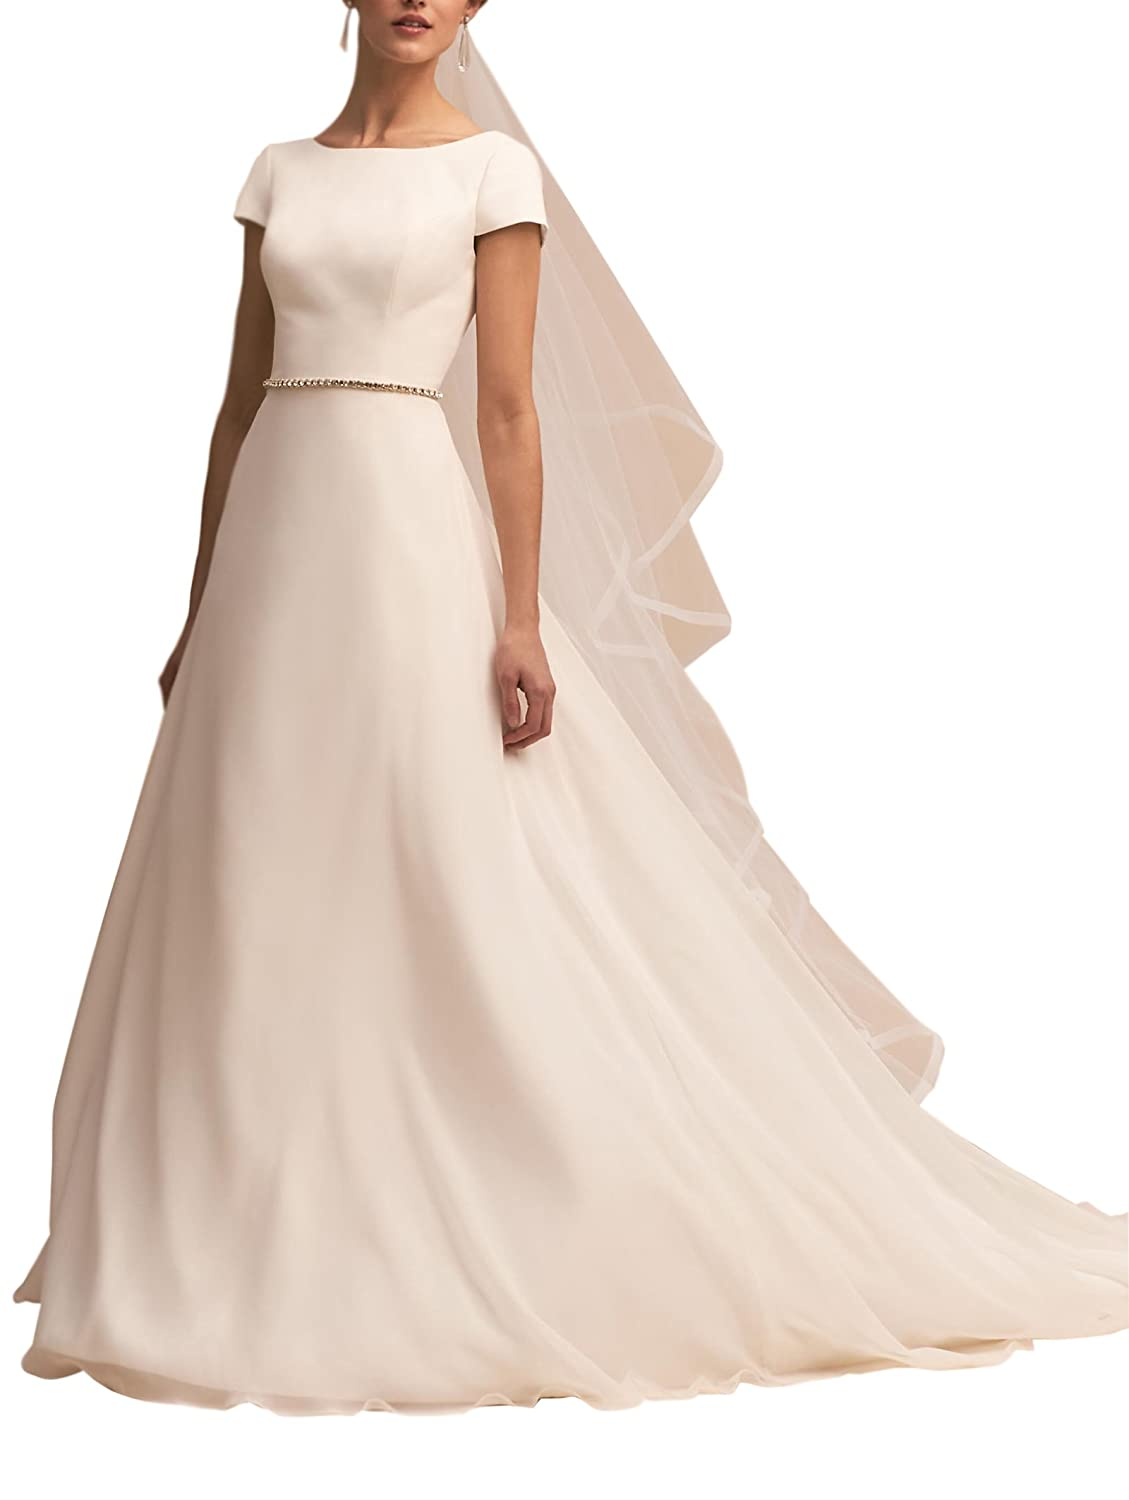 Newdeve White Round Neckline Cap Sleeves Classic Satin Backless